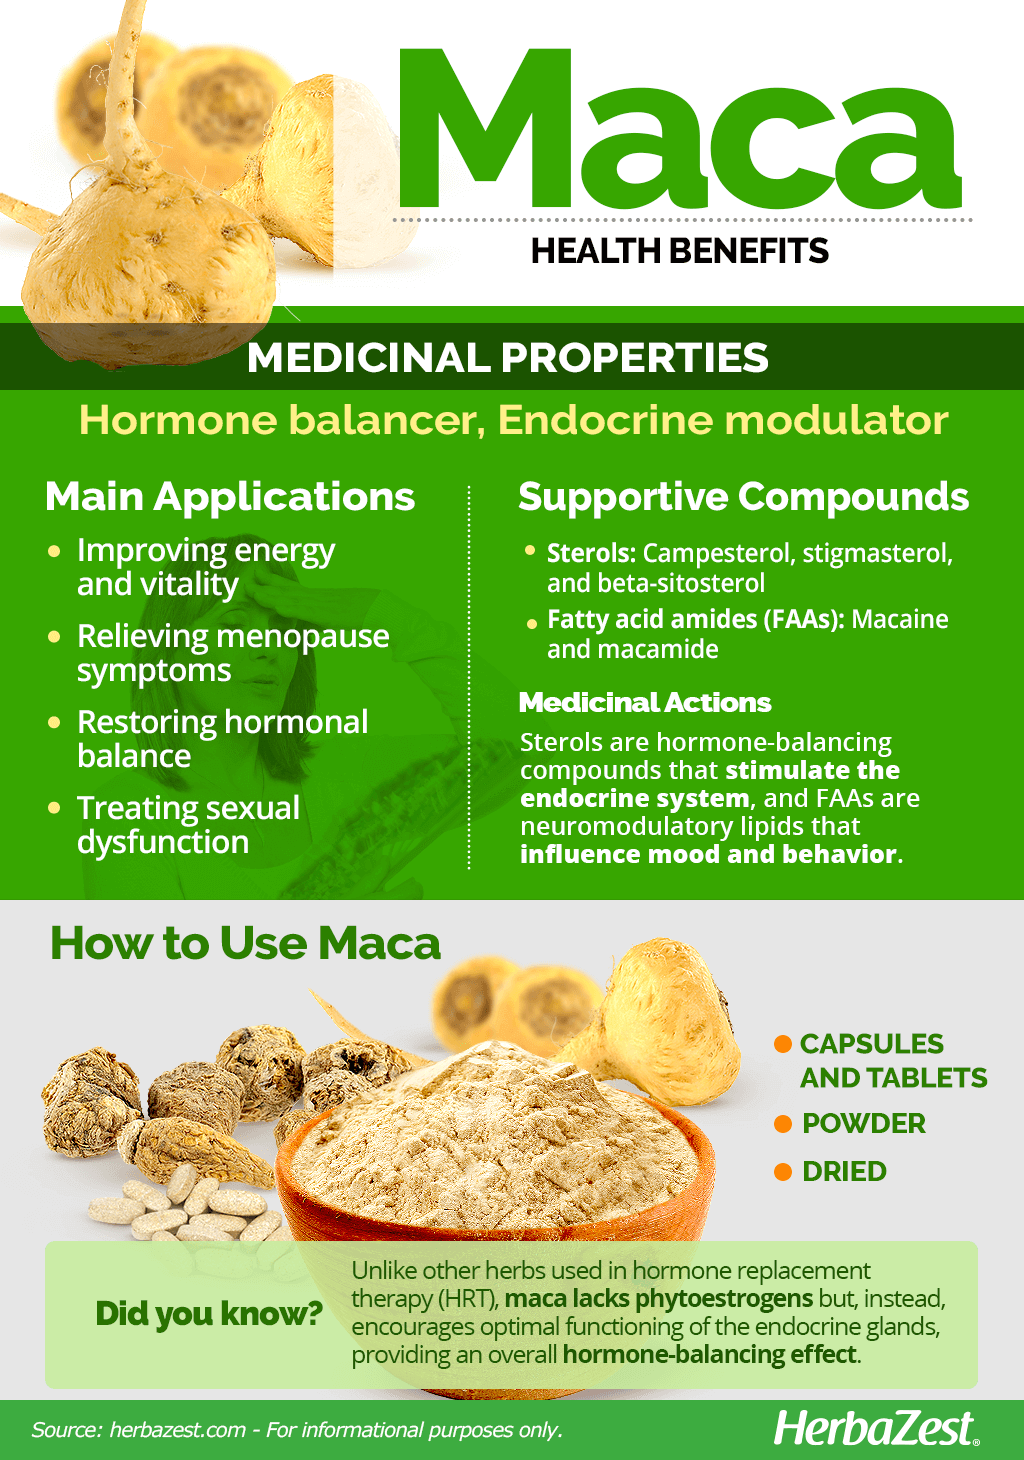 All About Maca